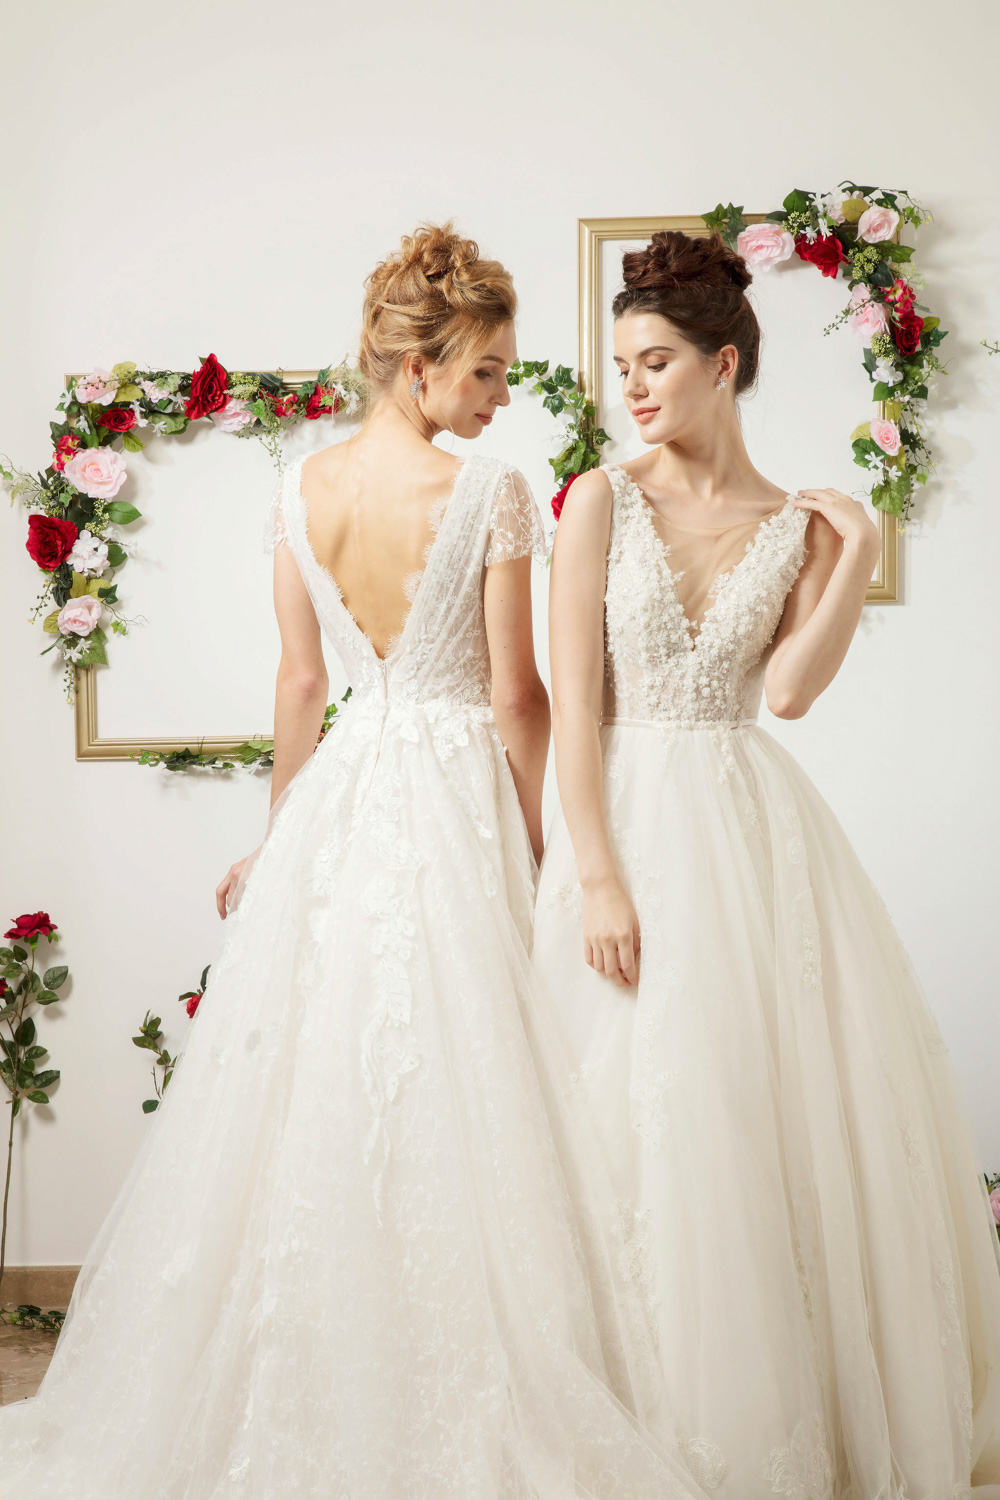 Backless wedding dress and wedding dress with plunging neckline by CCM Wedding